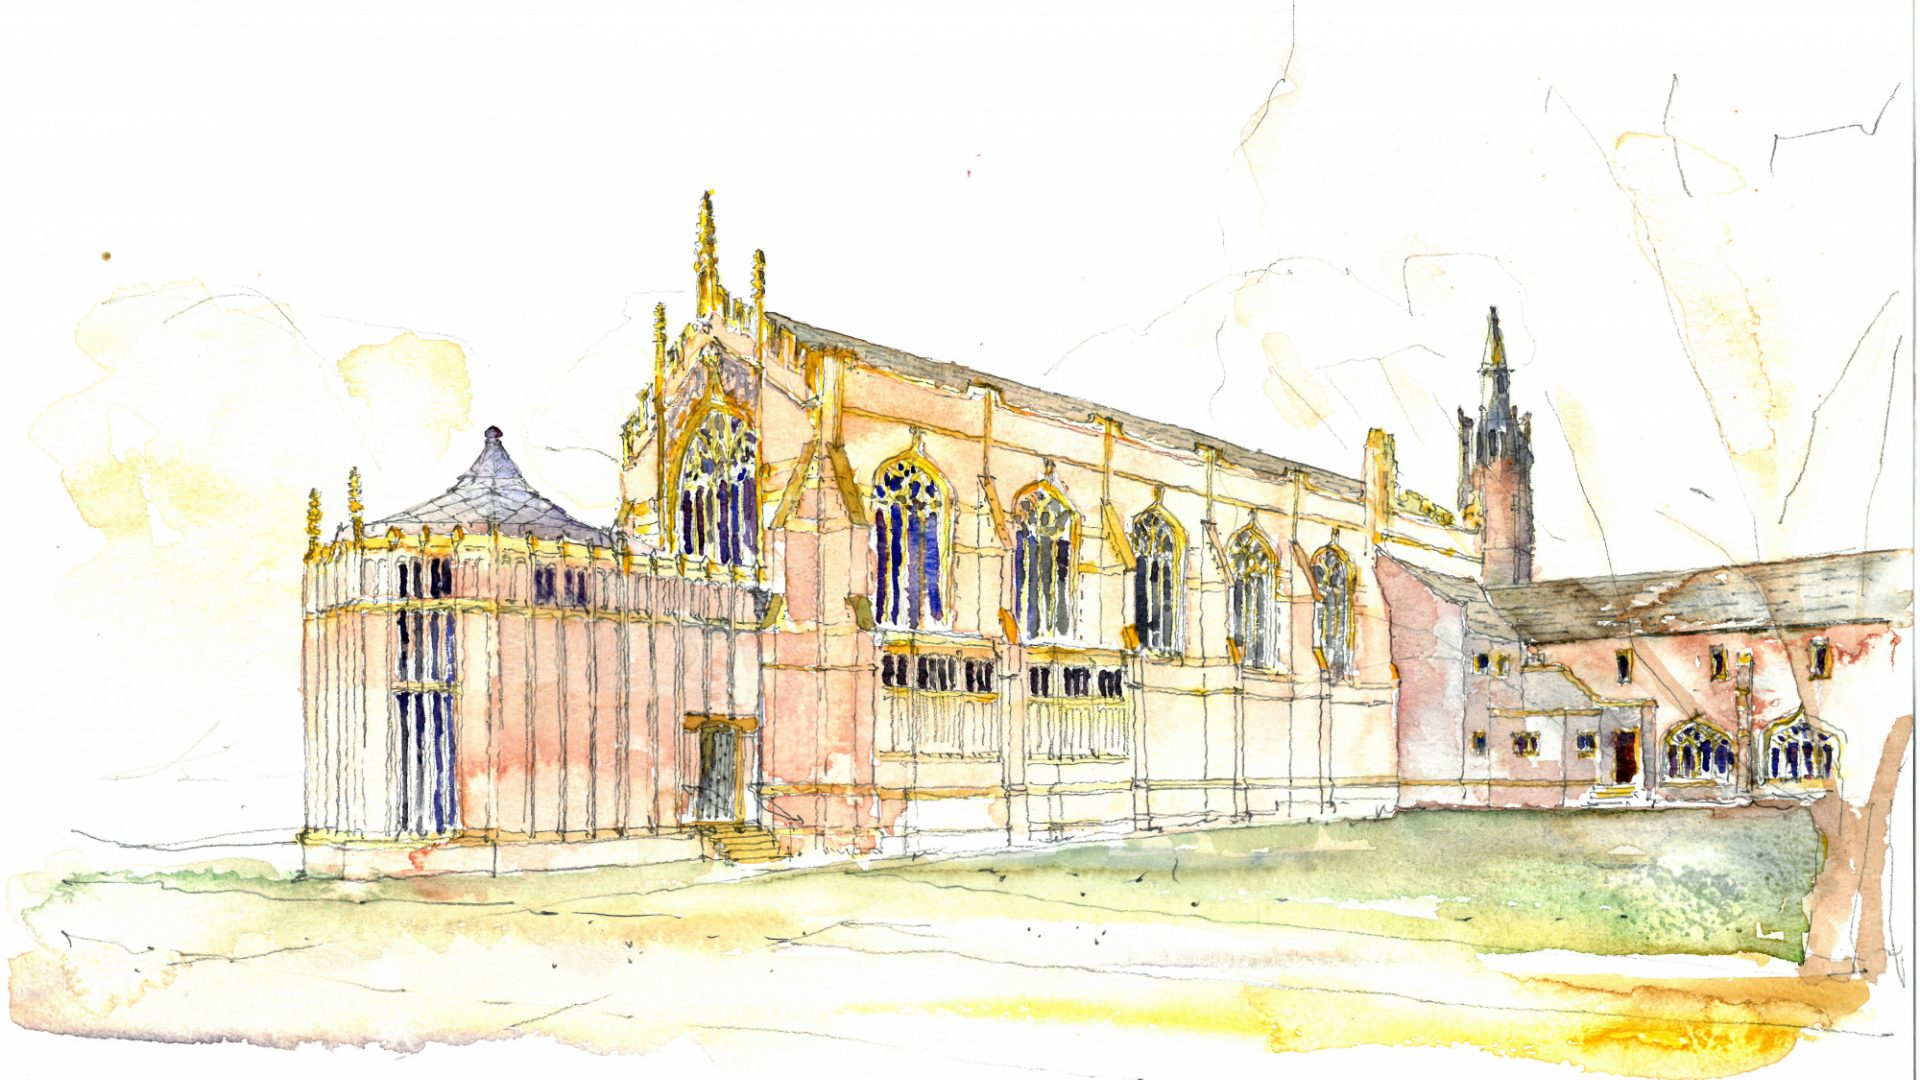 The development of the Chapel is a conscious continuation of Jackson's work, whilst having its own distinctive character and presence.